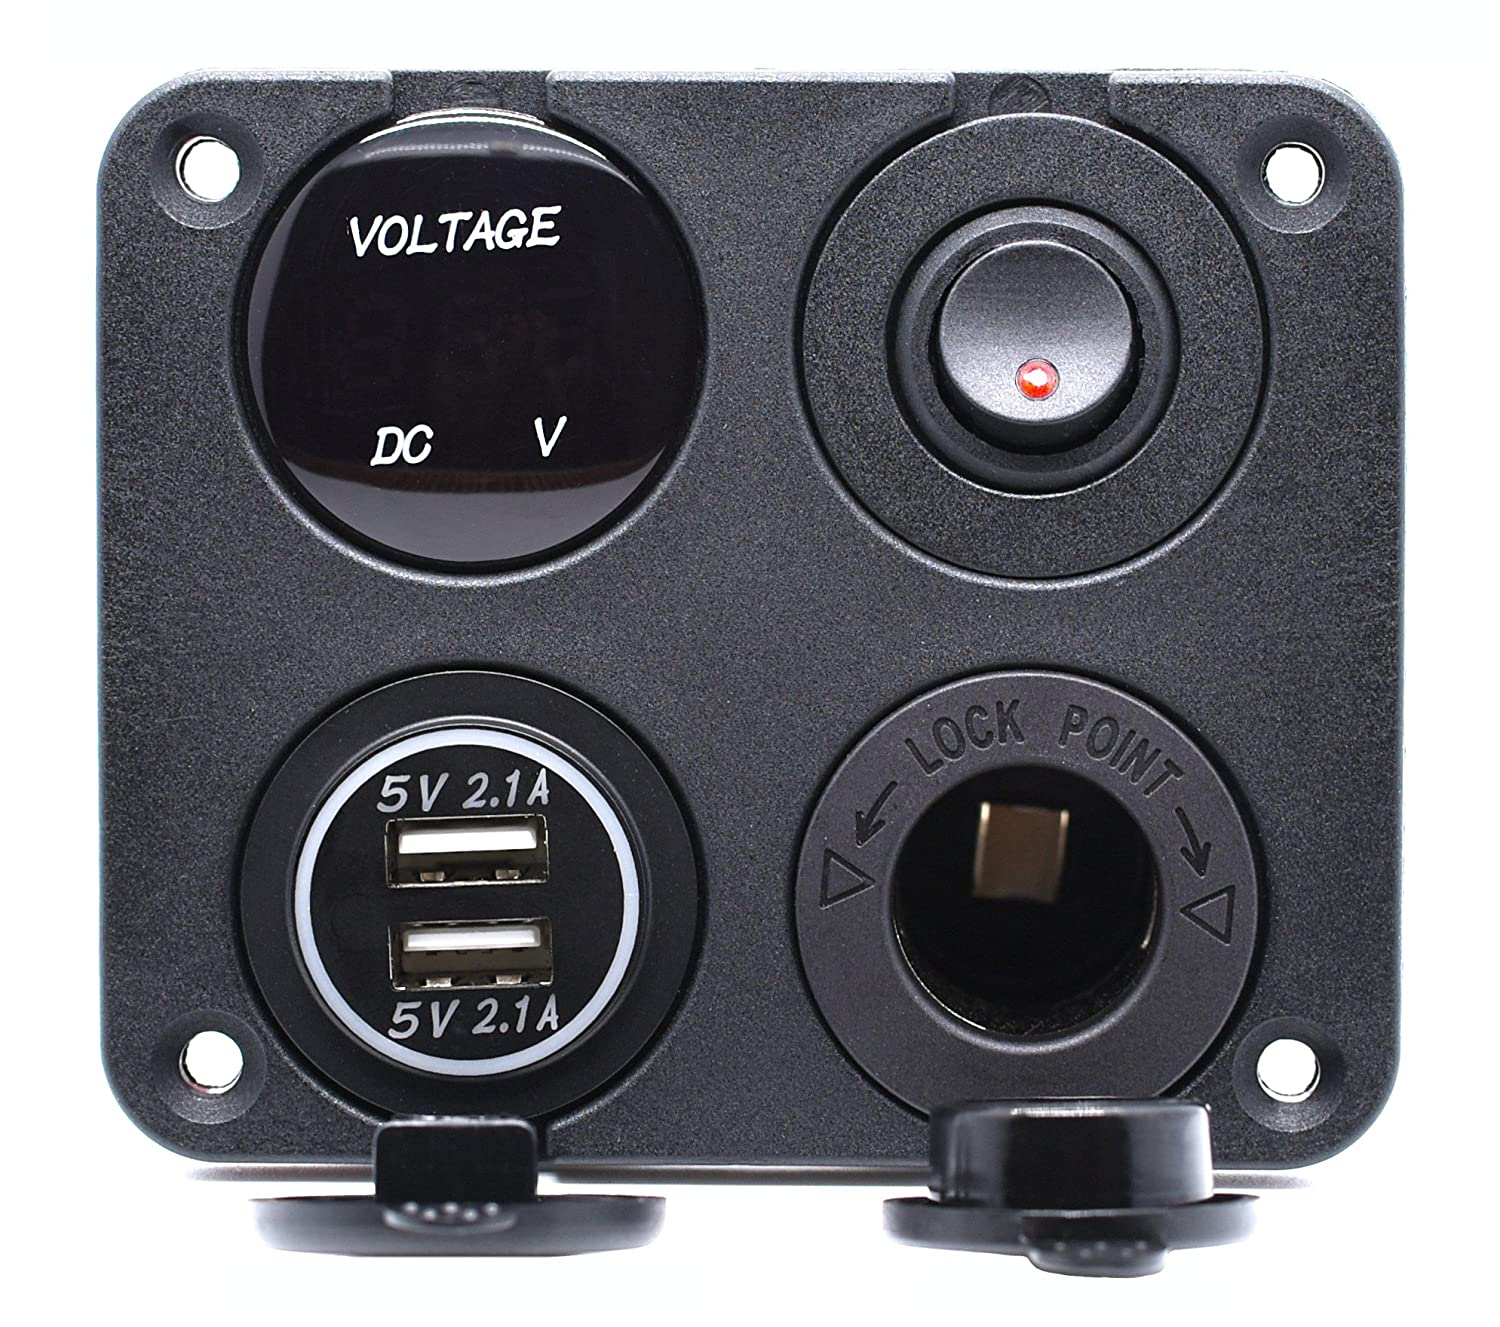 91SHxXKUZjL._SL1500_ cllena dual usb socket charger 2 1a&2 1a led voltmeter 12v  at fashall.co